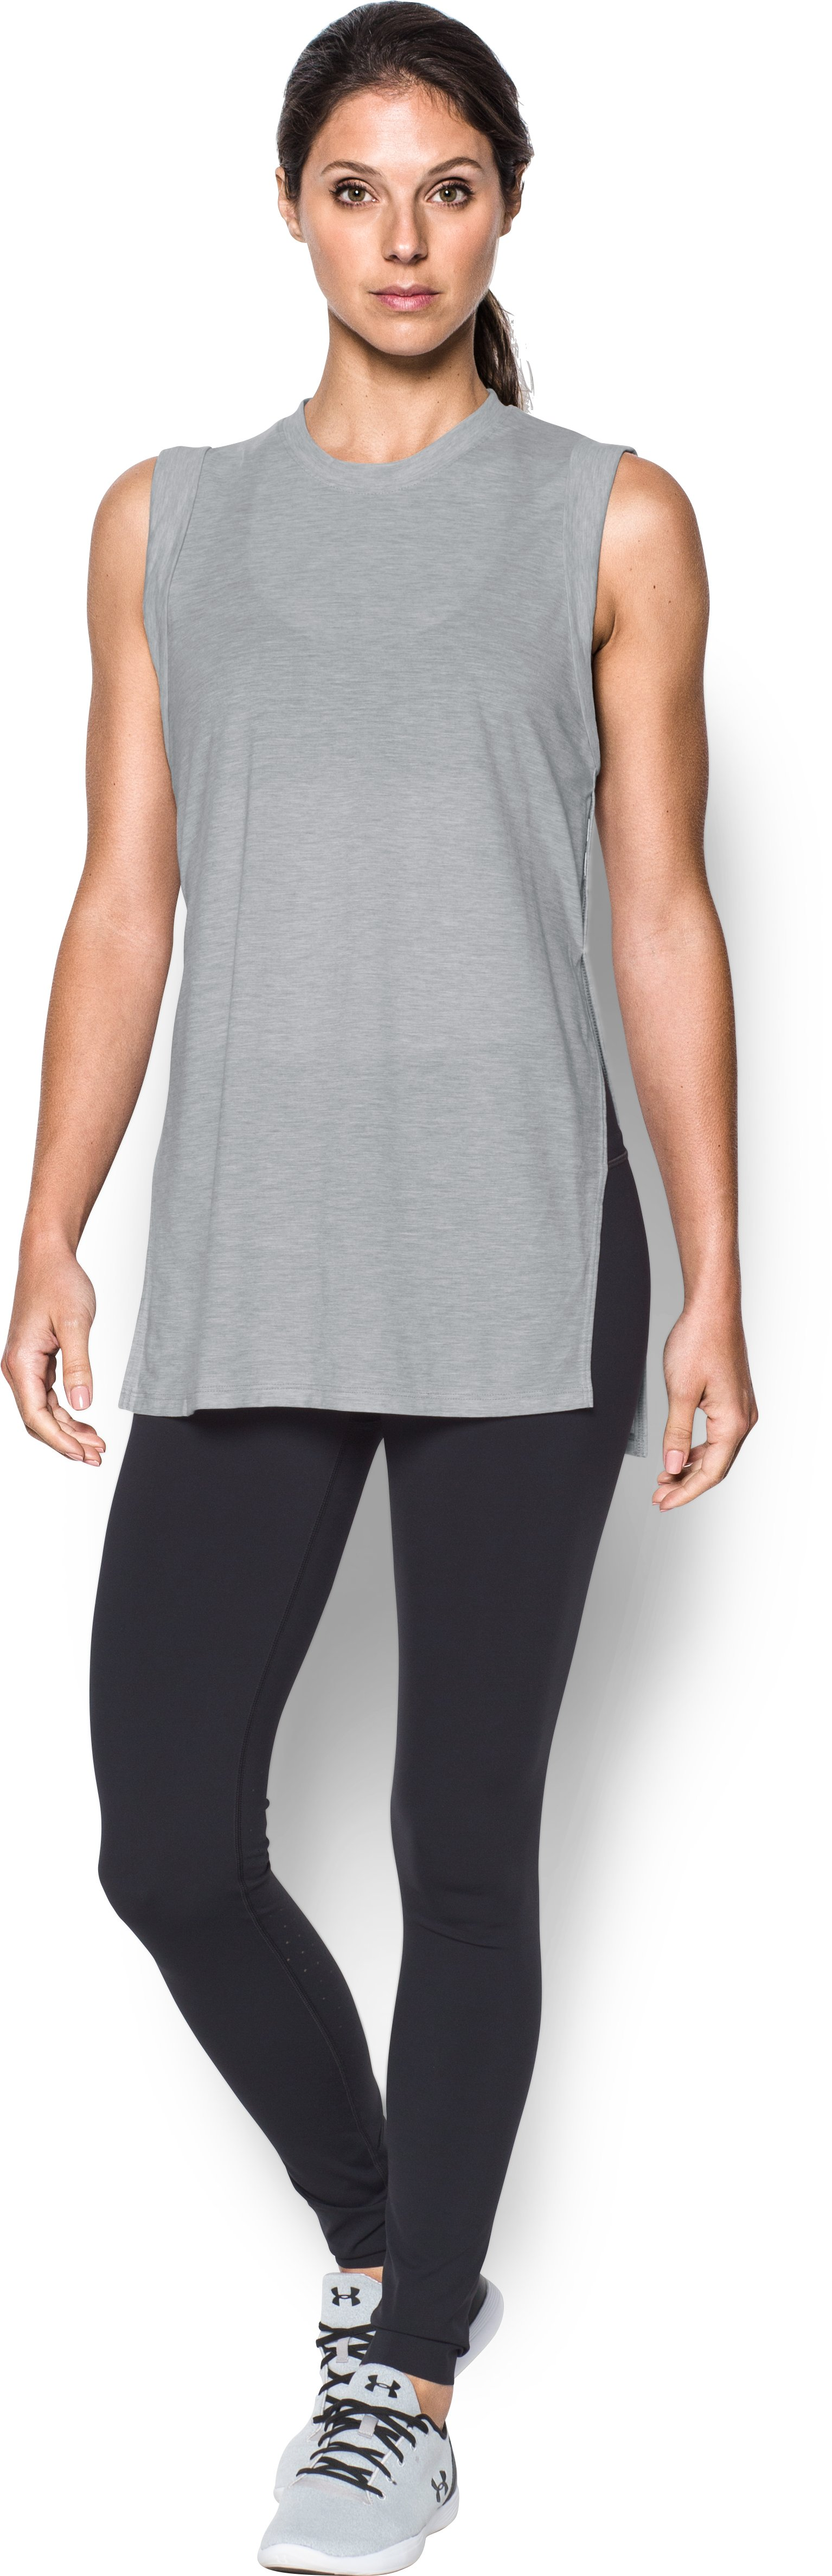 Women's UA Breathe Tunic Tank, True Gray Heather